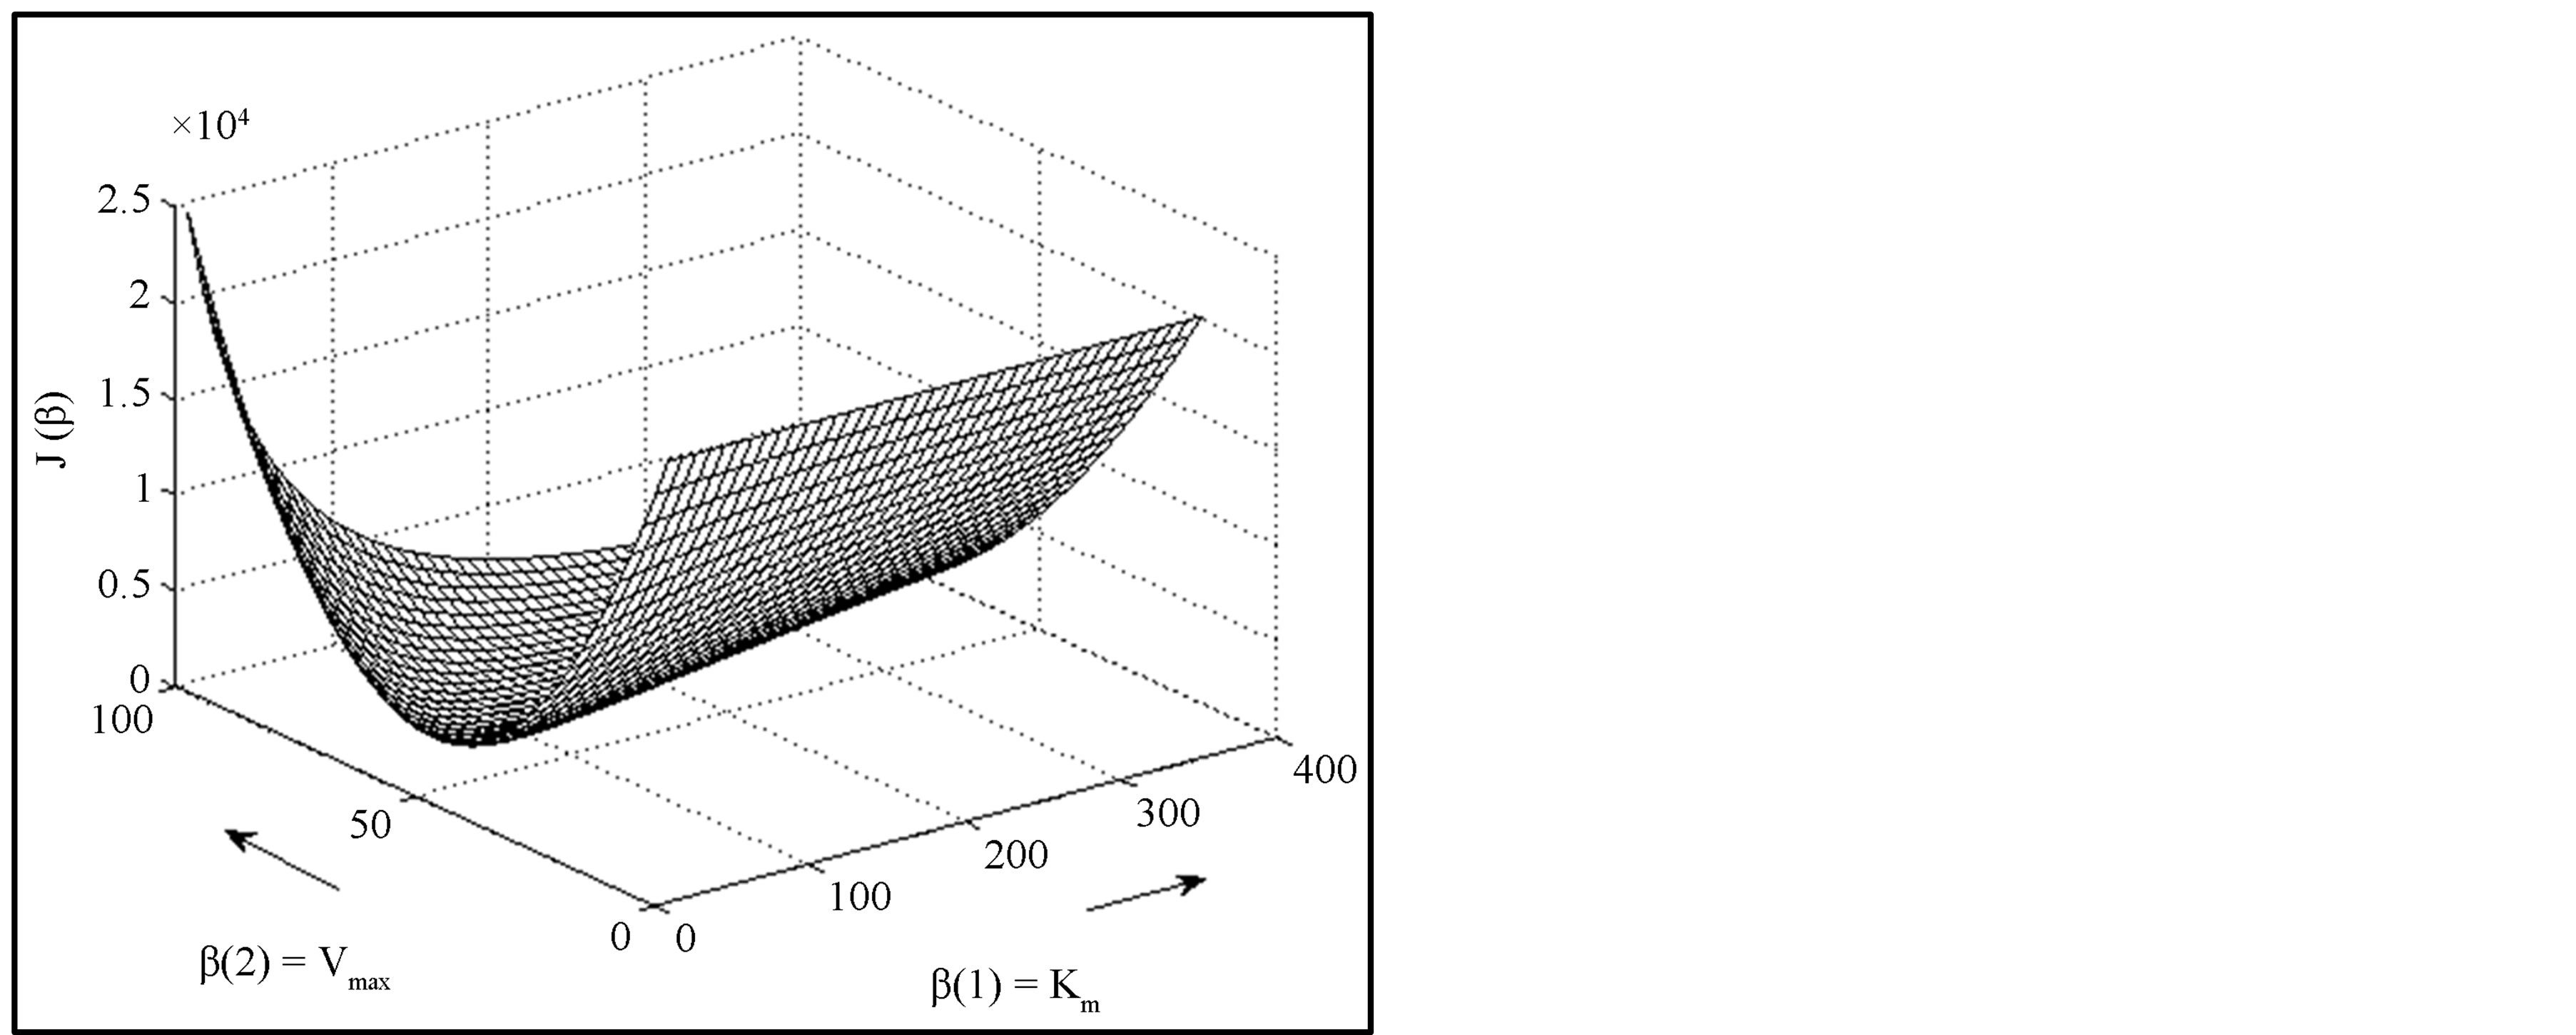 Parameter Estimation in Different Enzyme Reactions